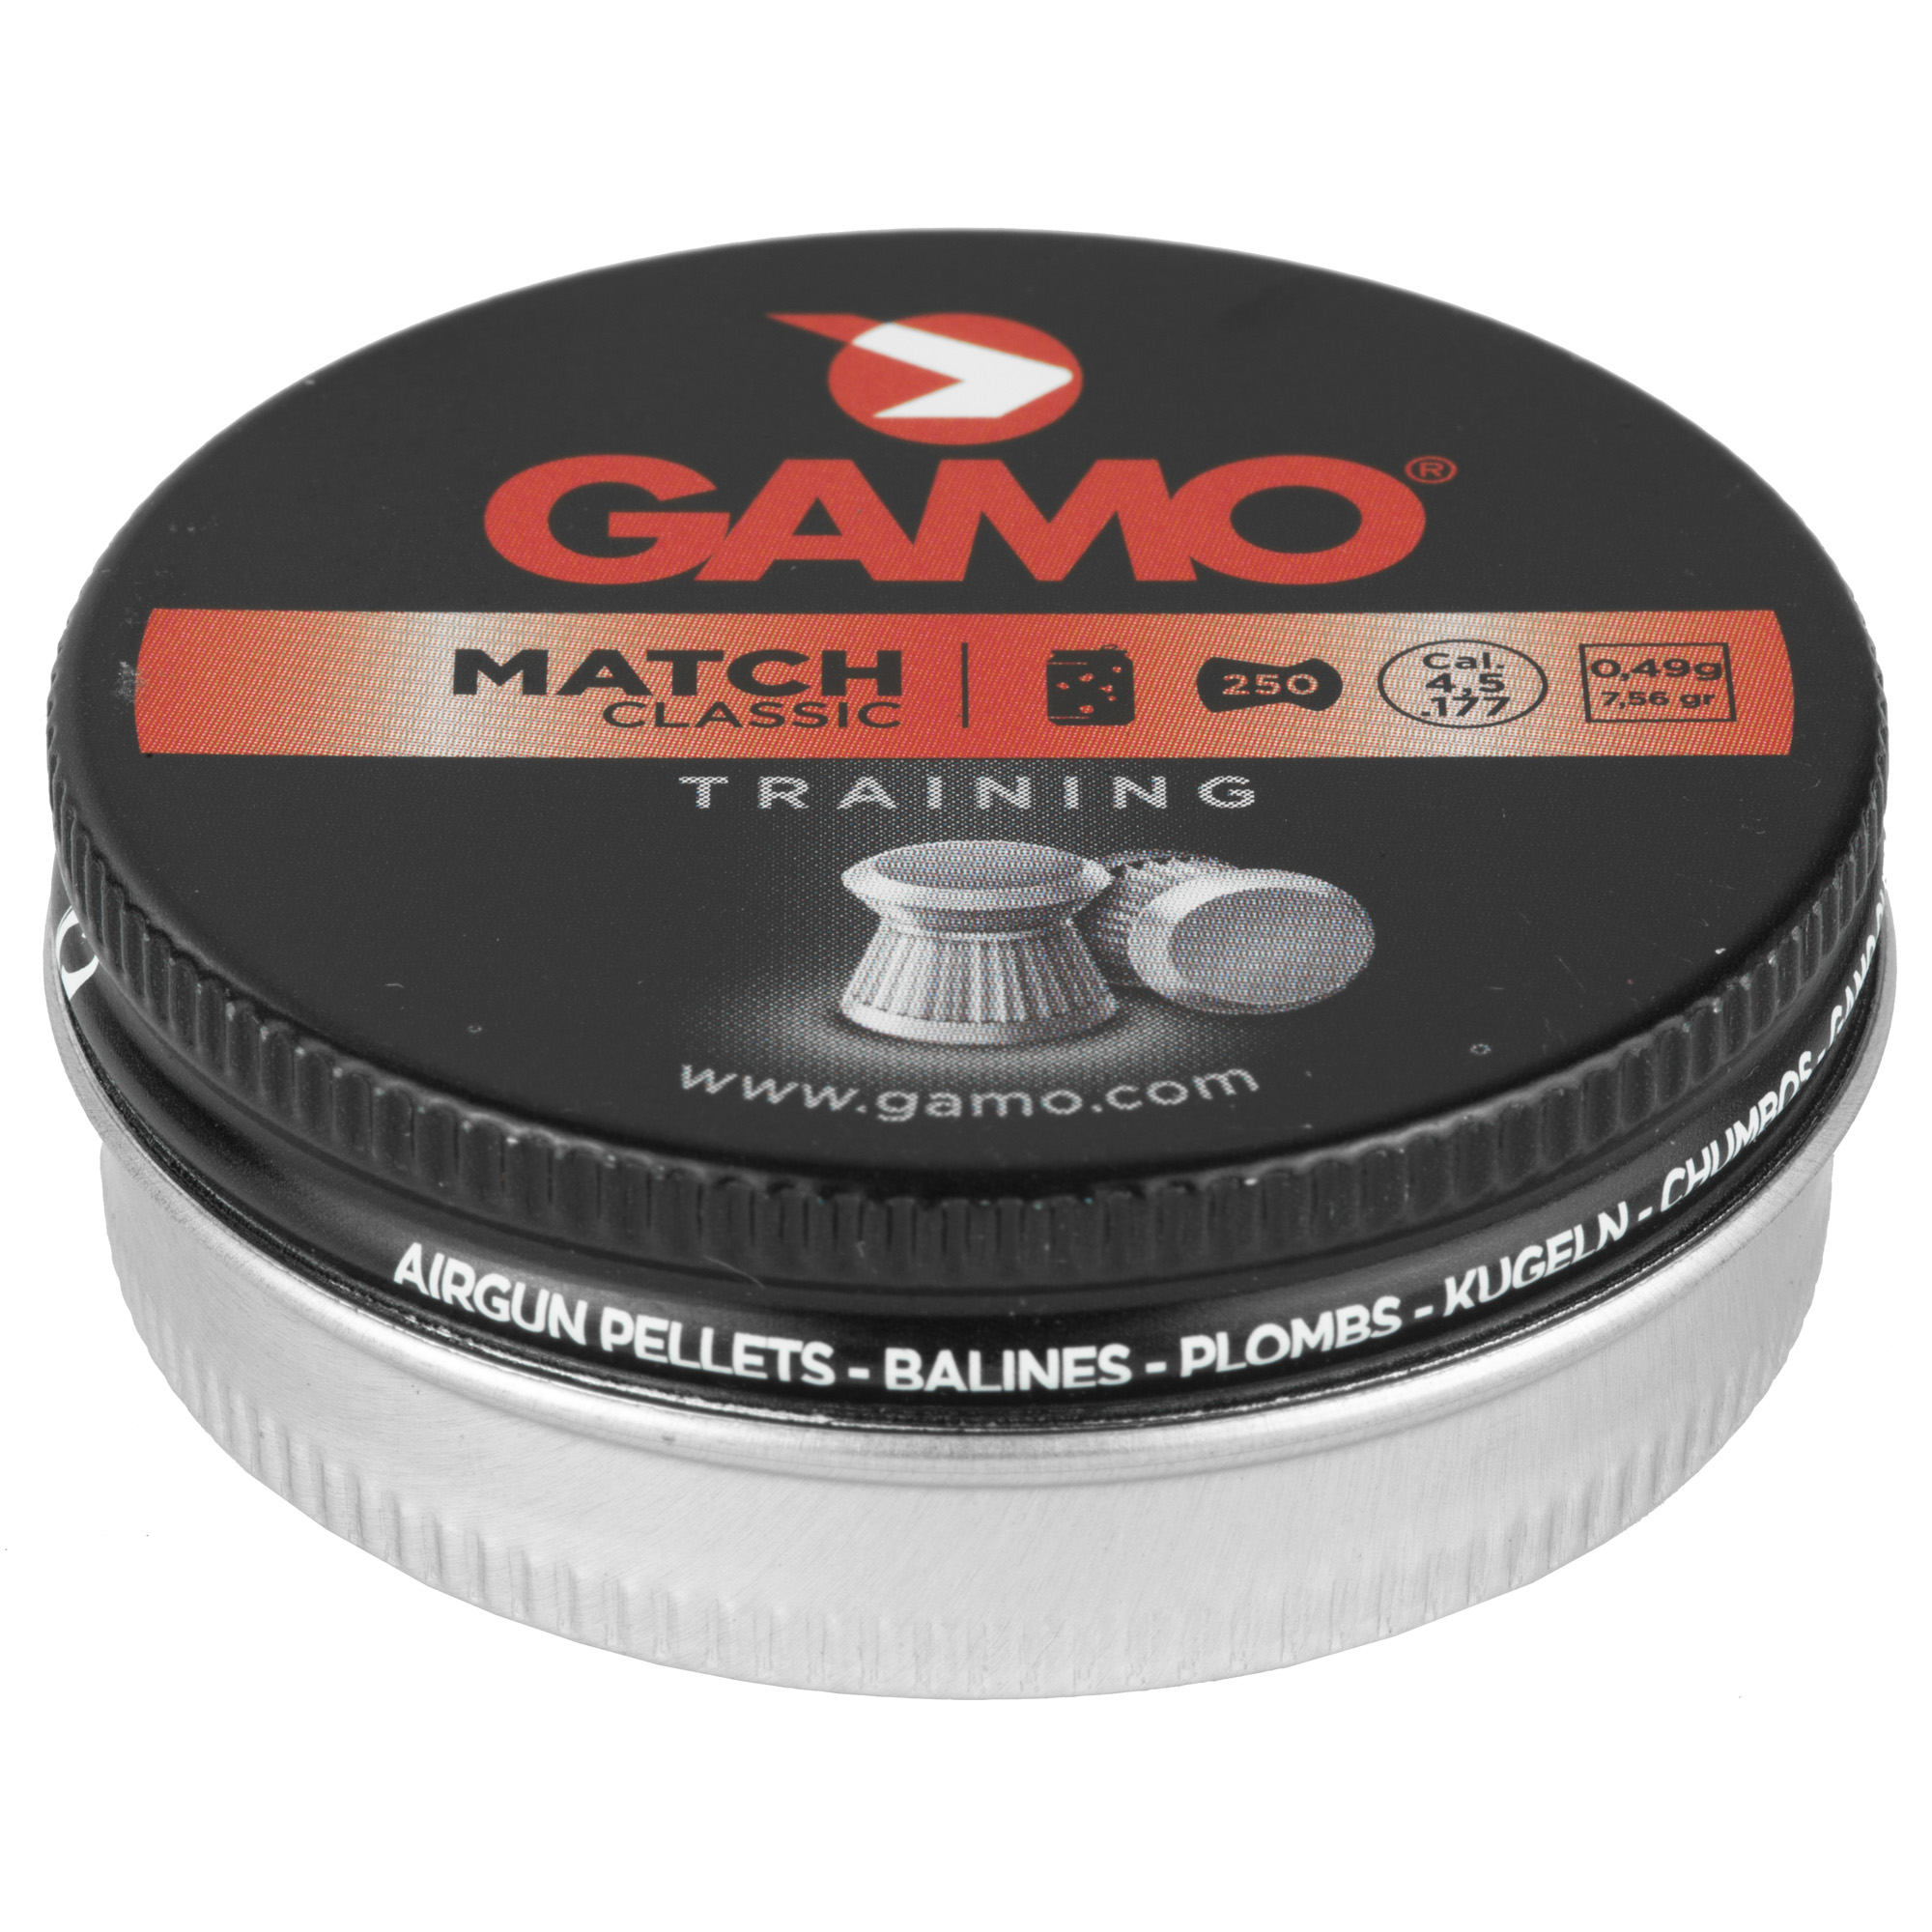 """GAMO's mission is to continually advance in air gun technology and to integrate new features to enhance your shooting experience. You can expect quality and performance from GAMO air rifles"""" air pistols"""" airgun pellets and any GAMO accessory."""